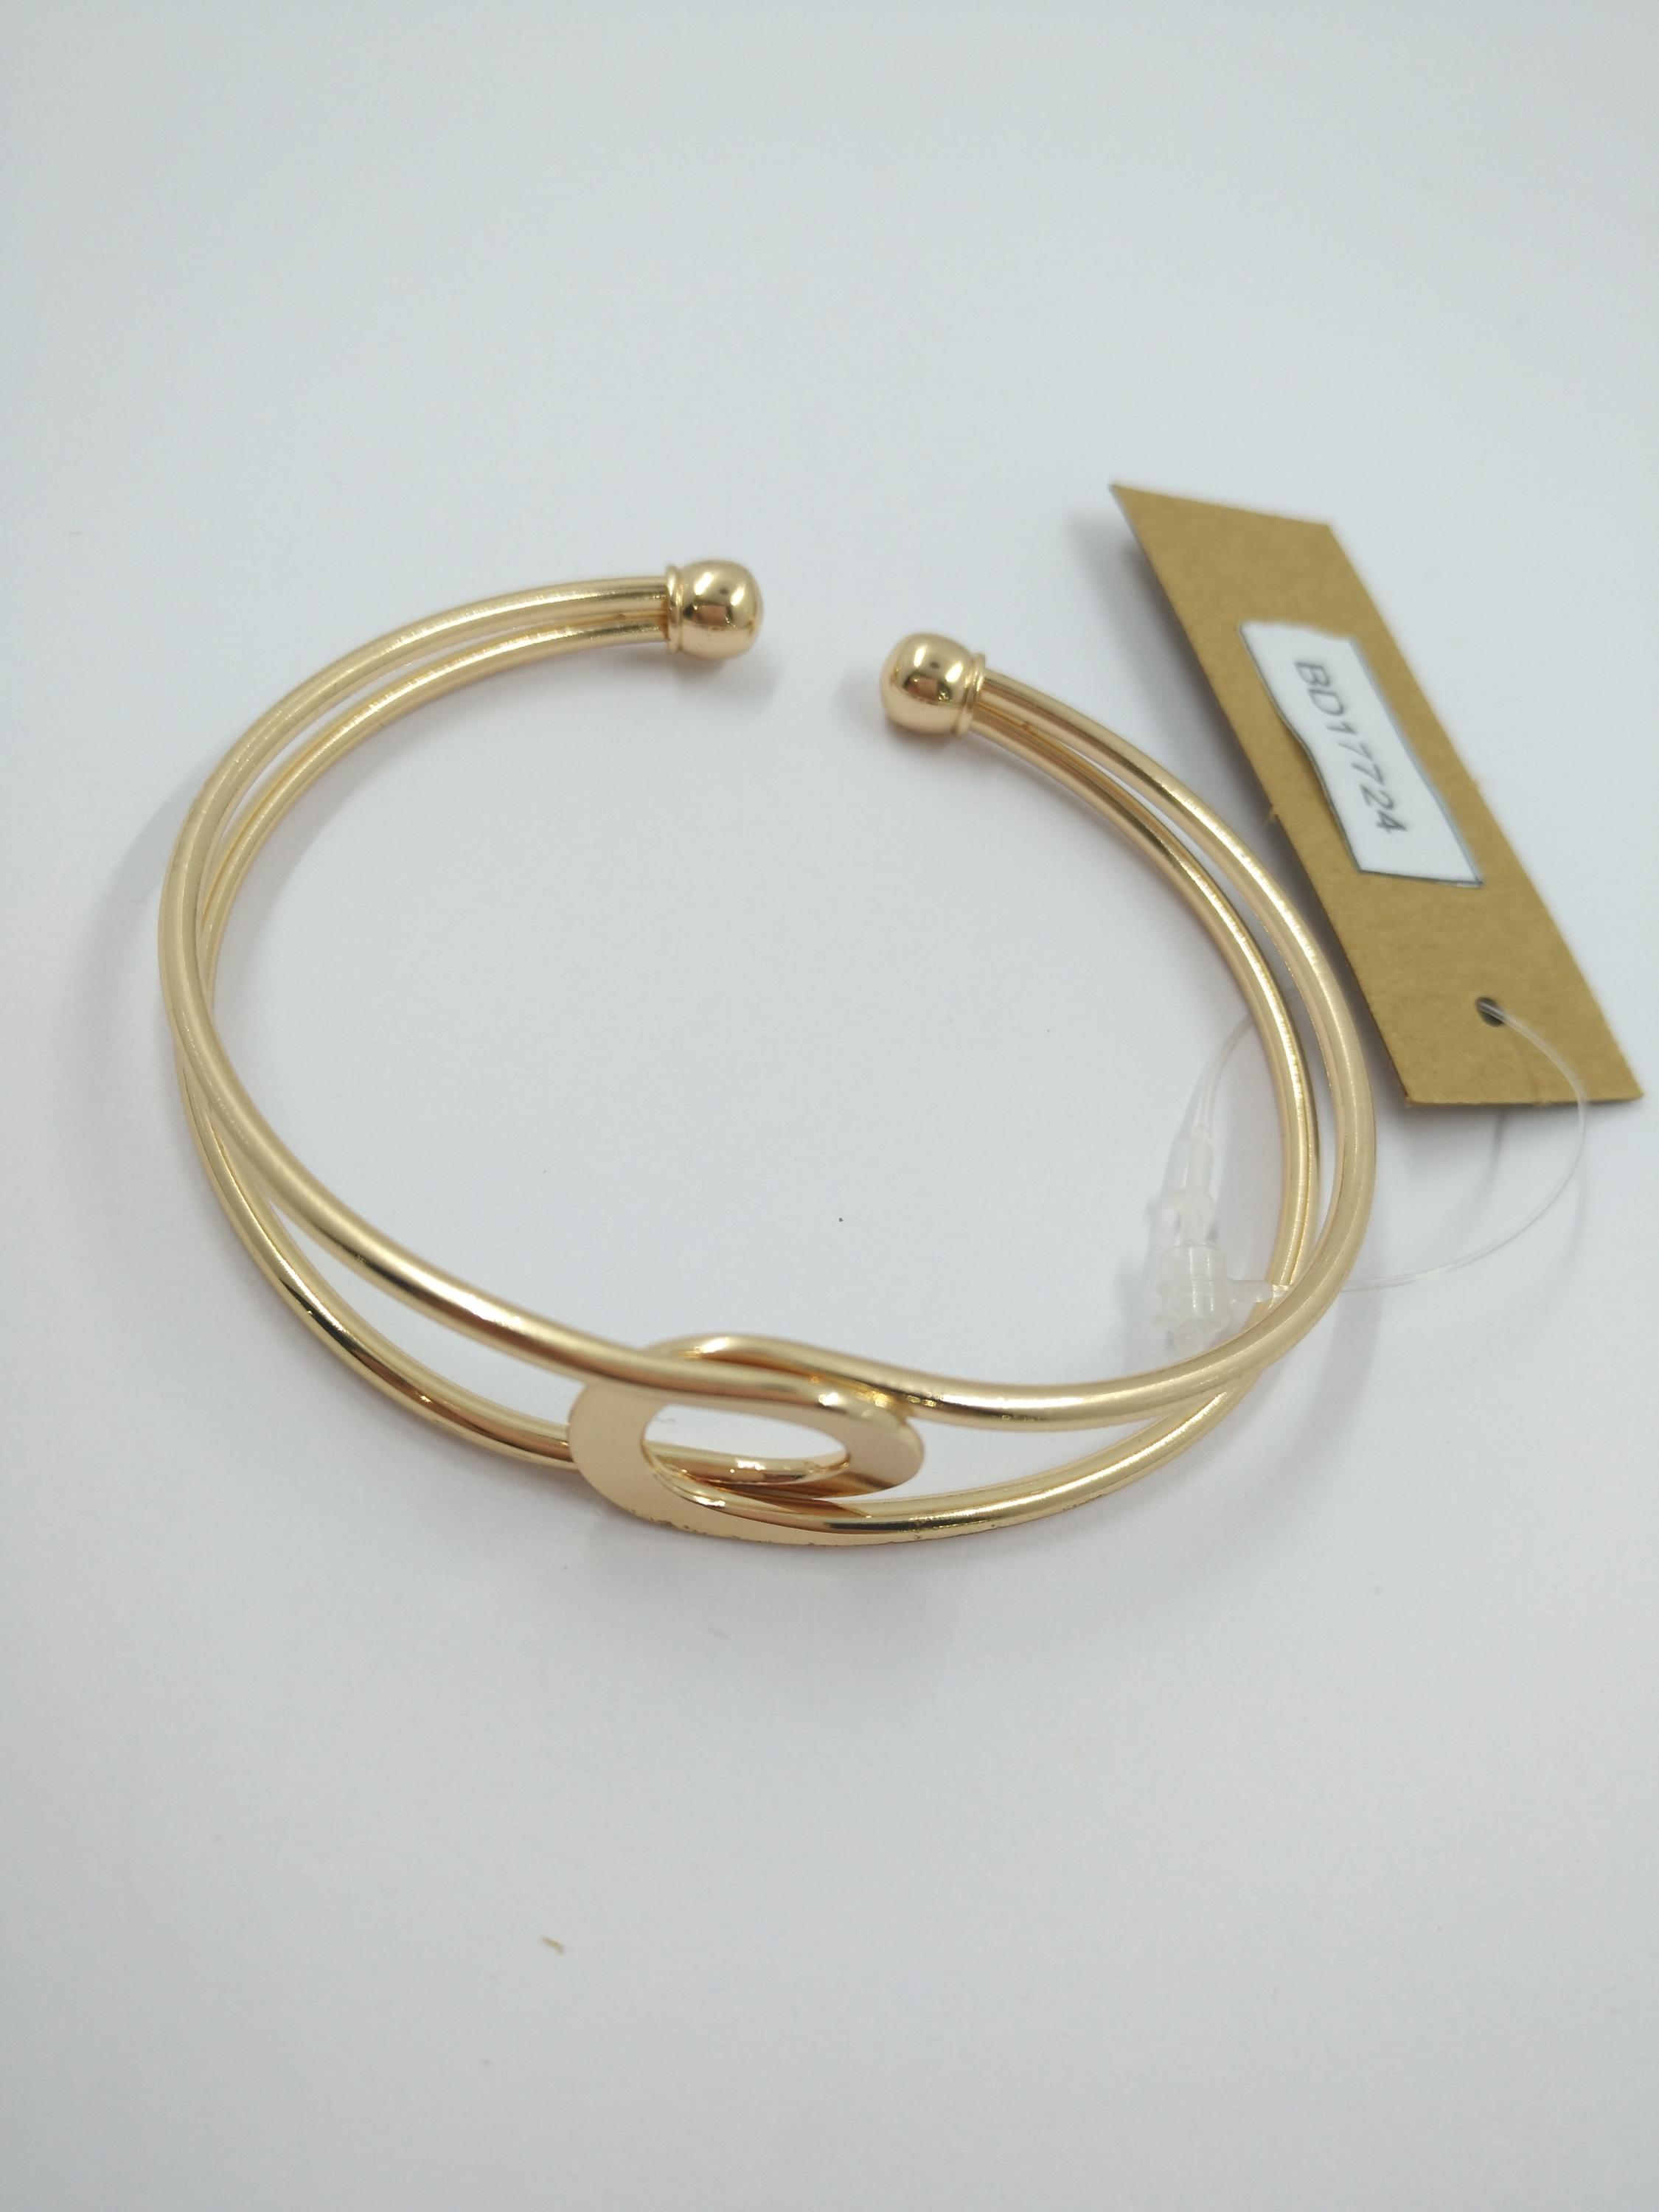 jewellery the dainty bestwishesjewellery circle design and by delicate gold of honeytrend bracelet most pieces